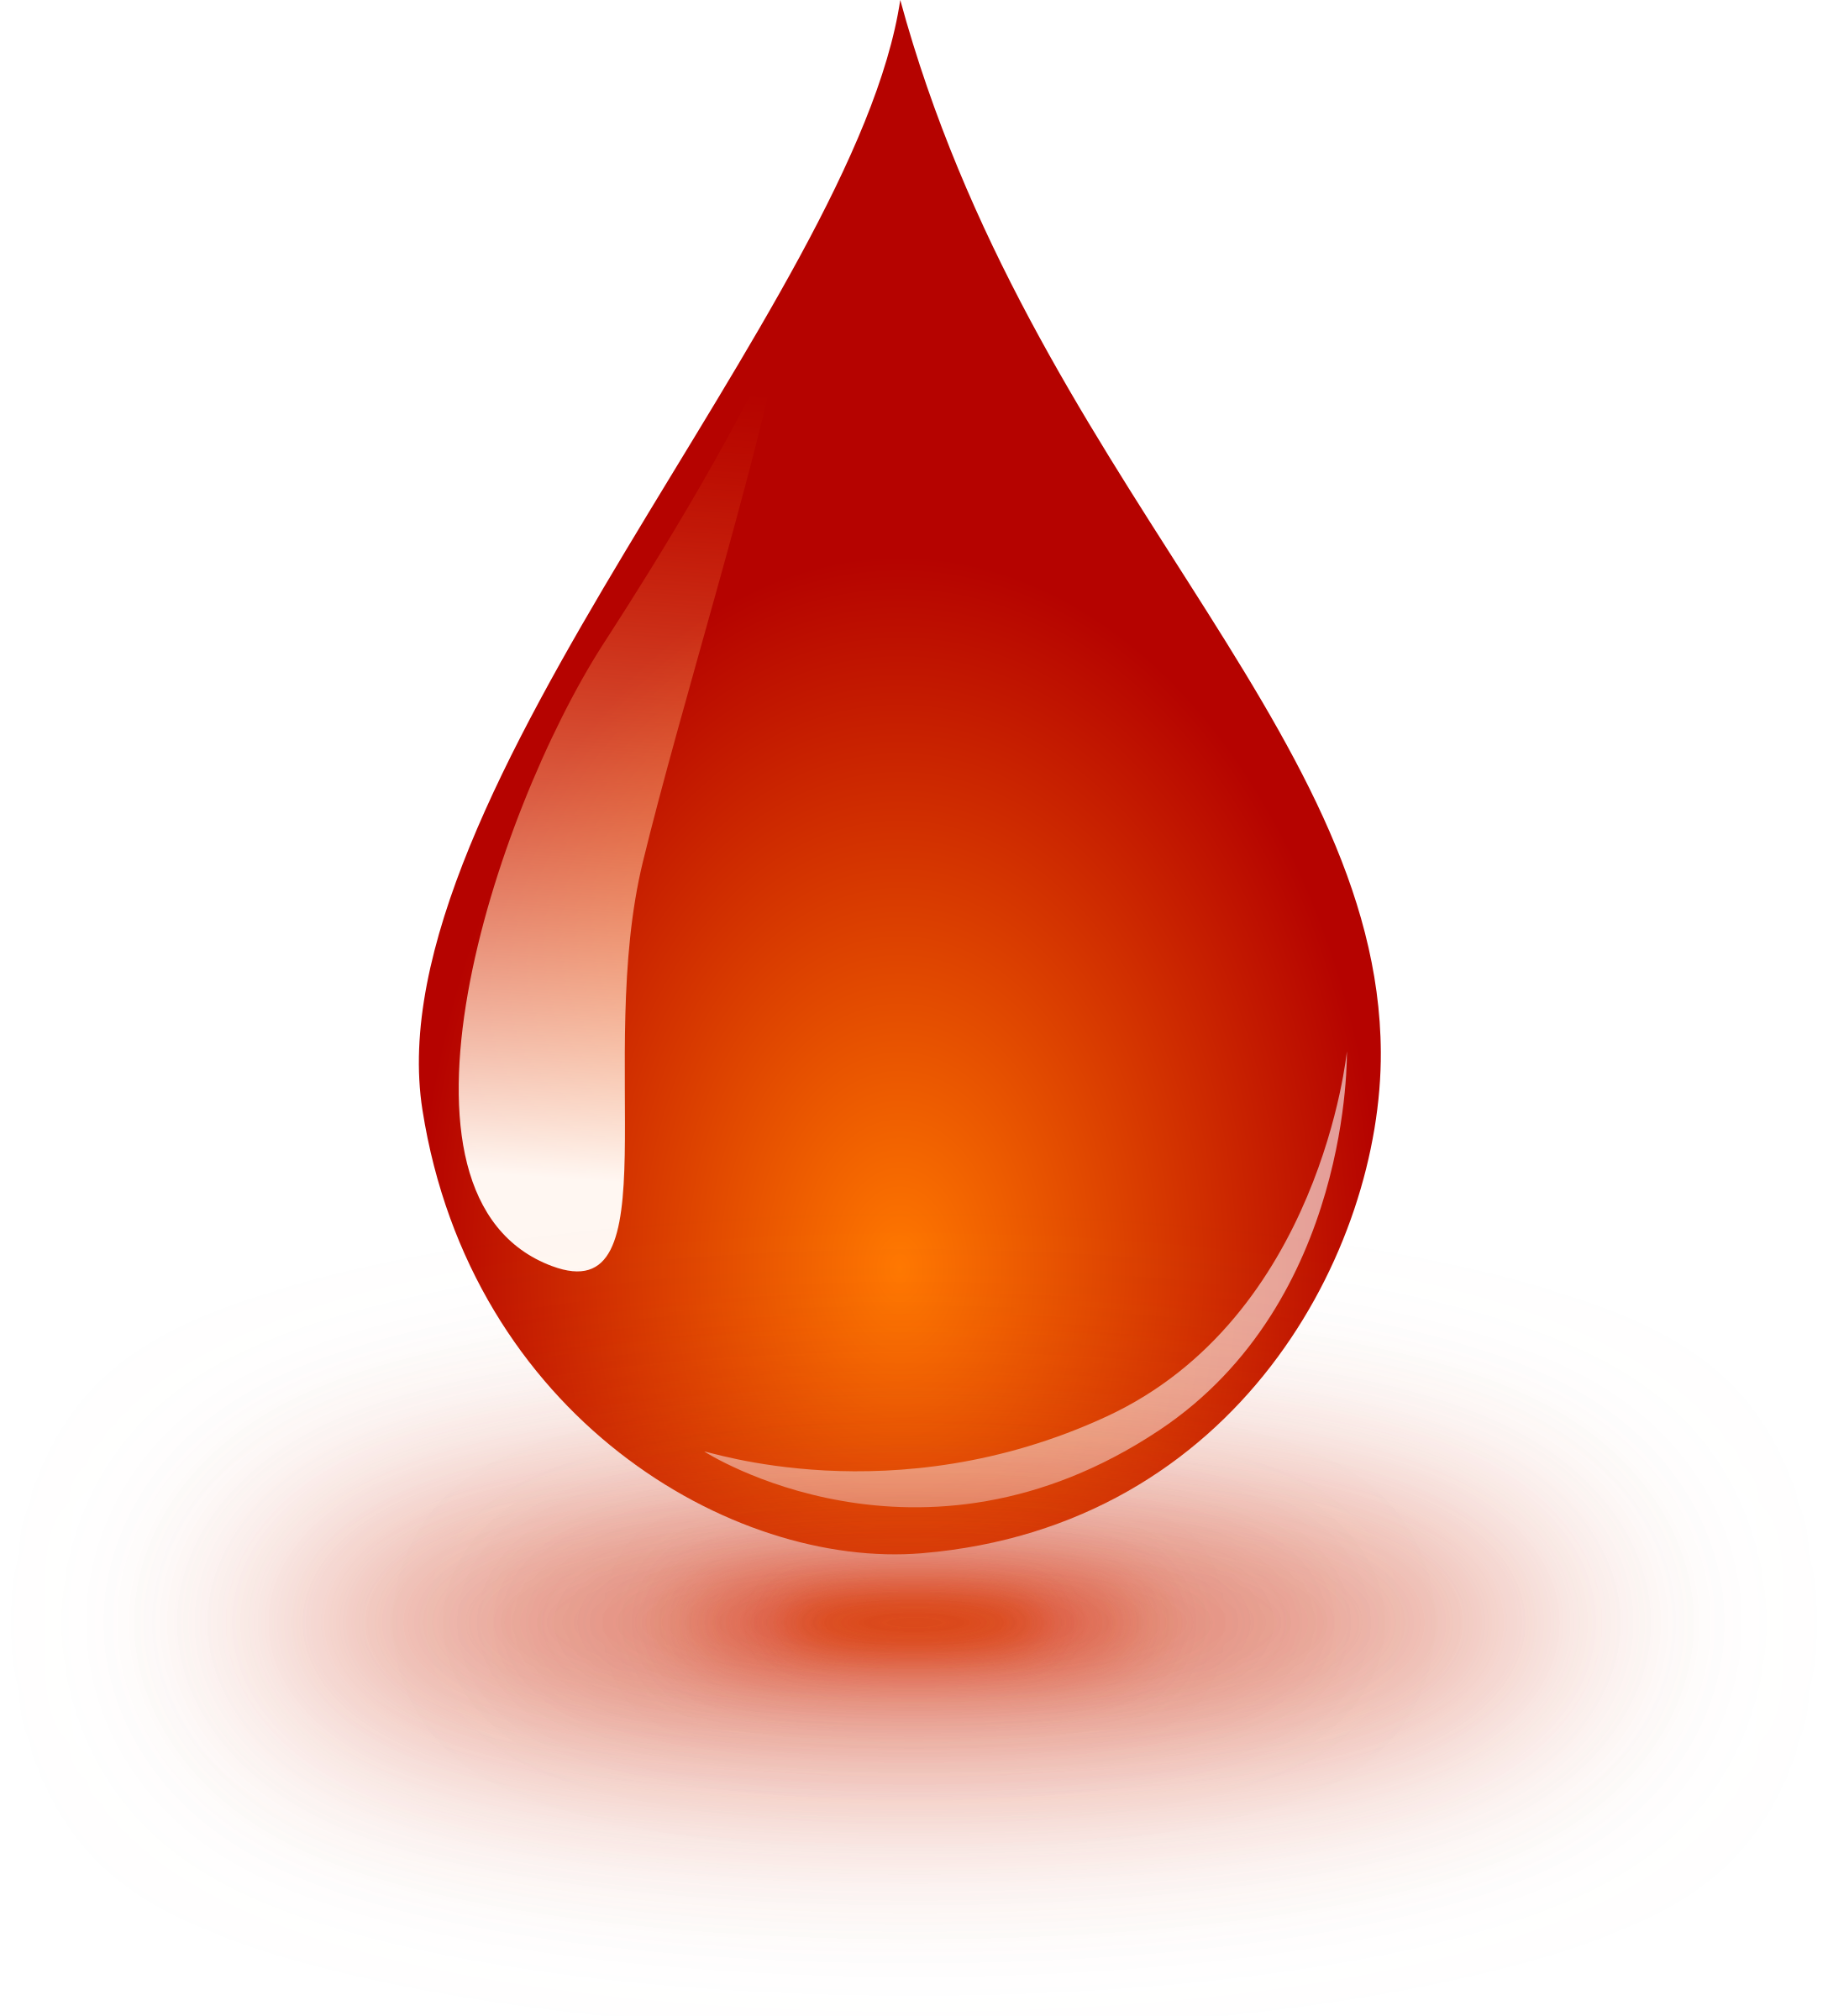 Blood Dripping Clipart   Free download on ClipArtMag